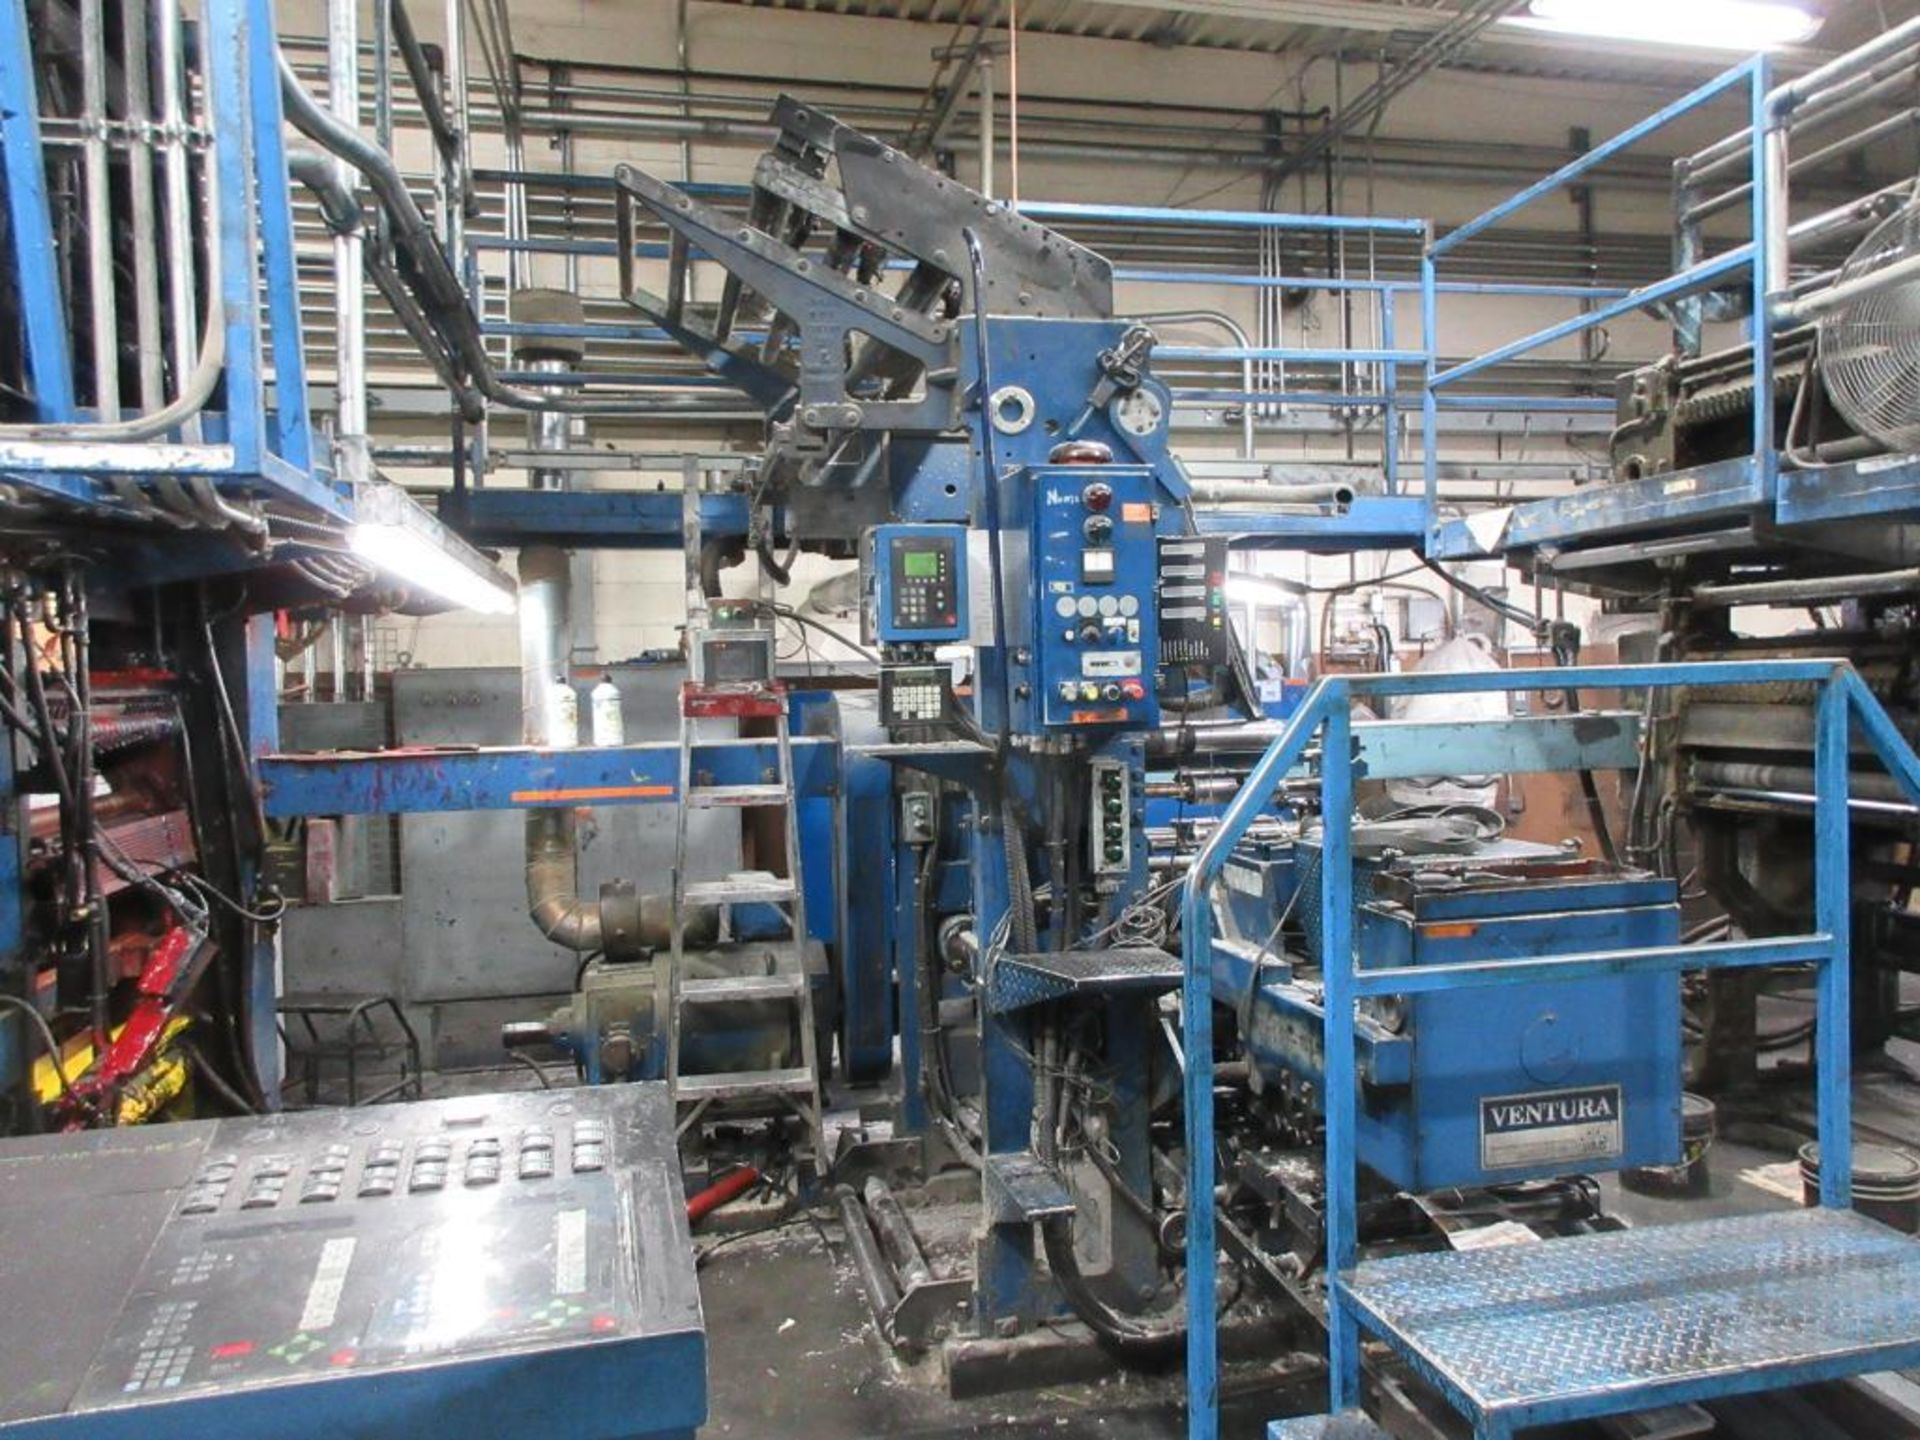 "Complete Goss/Ventura 22.75"" cut off 50 unit web offset press featuring: Ventura 30 4 high (0), Vent - Image 18 of 58"